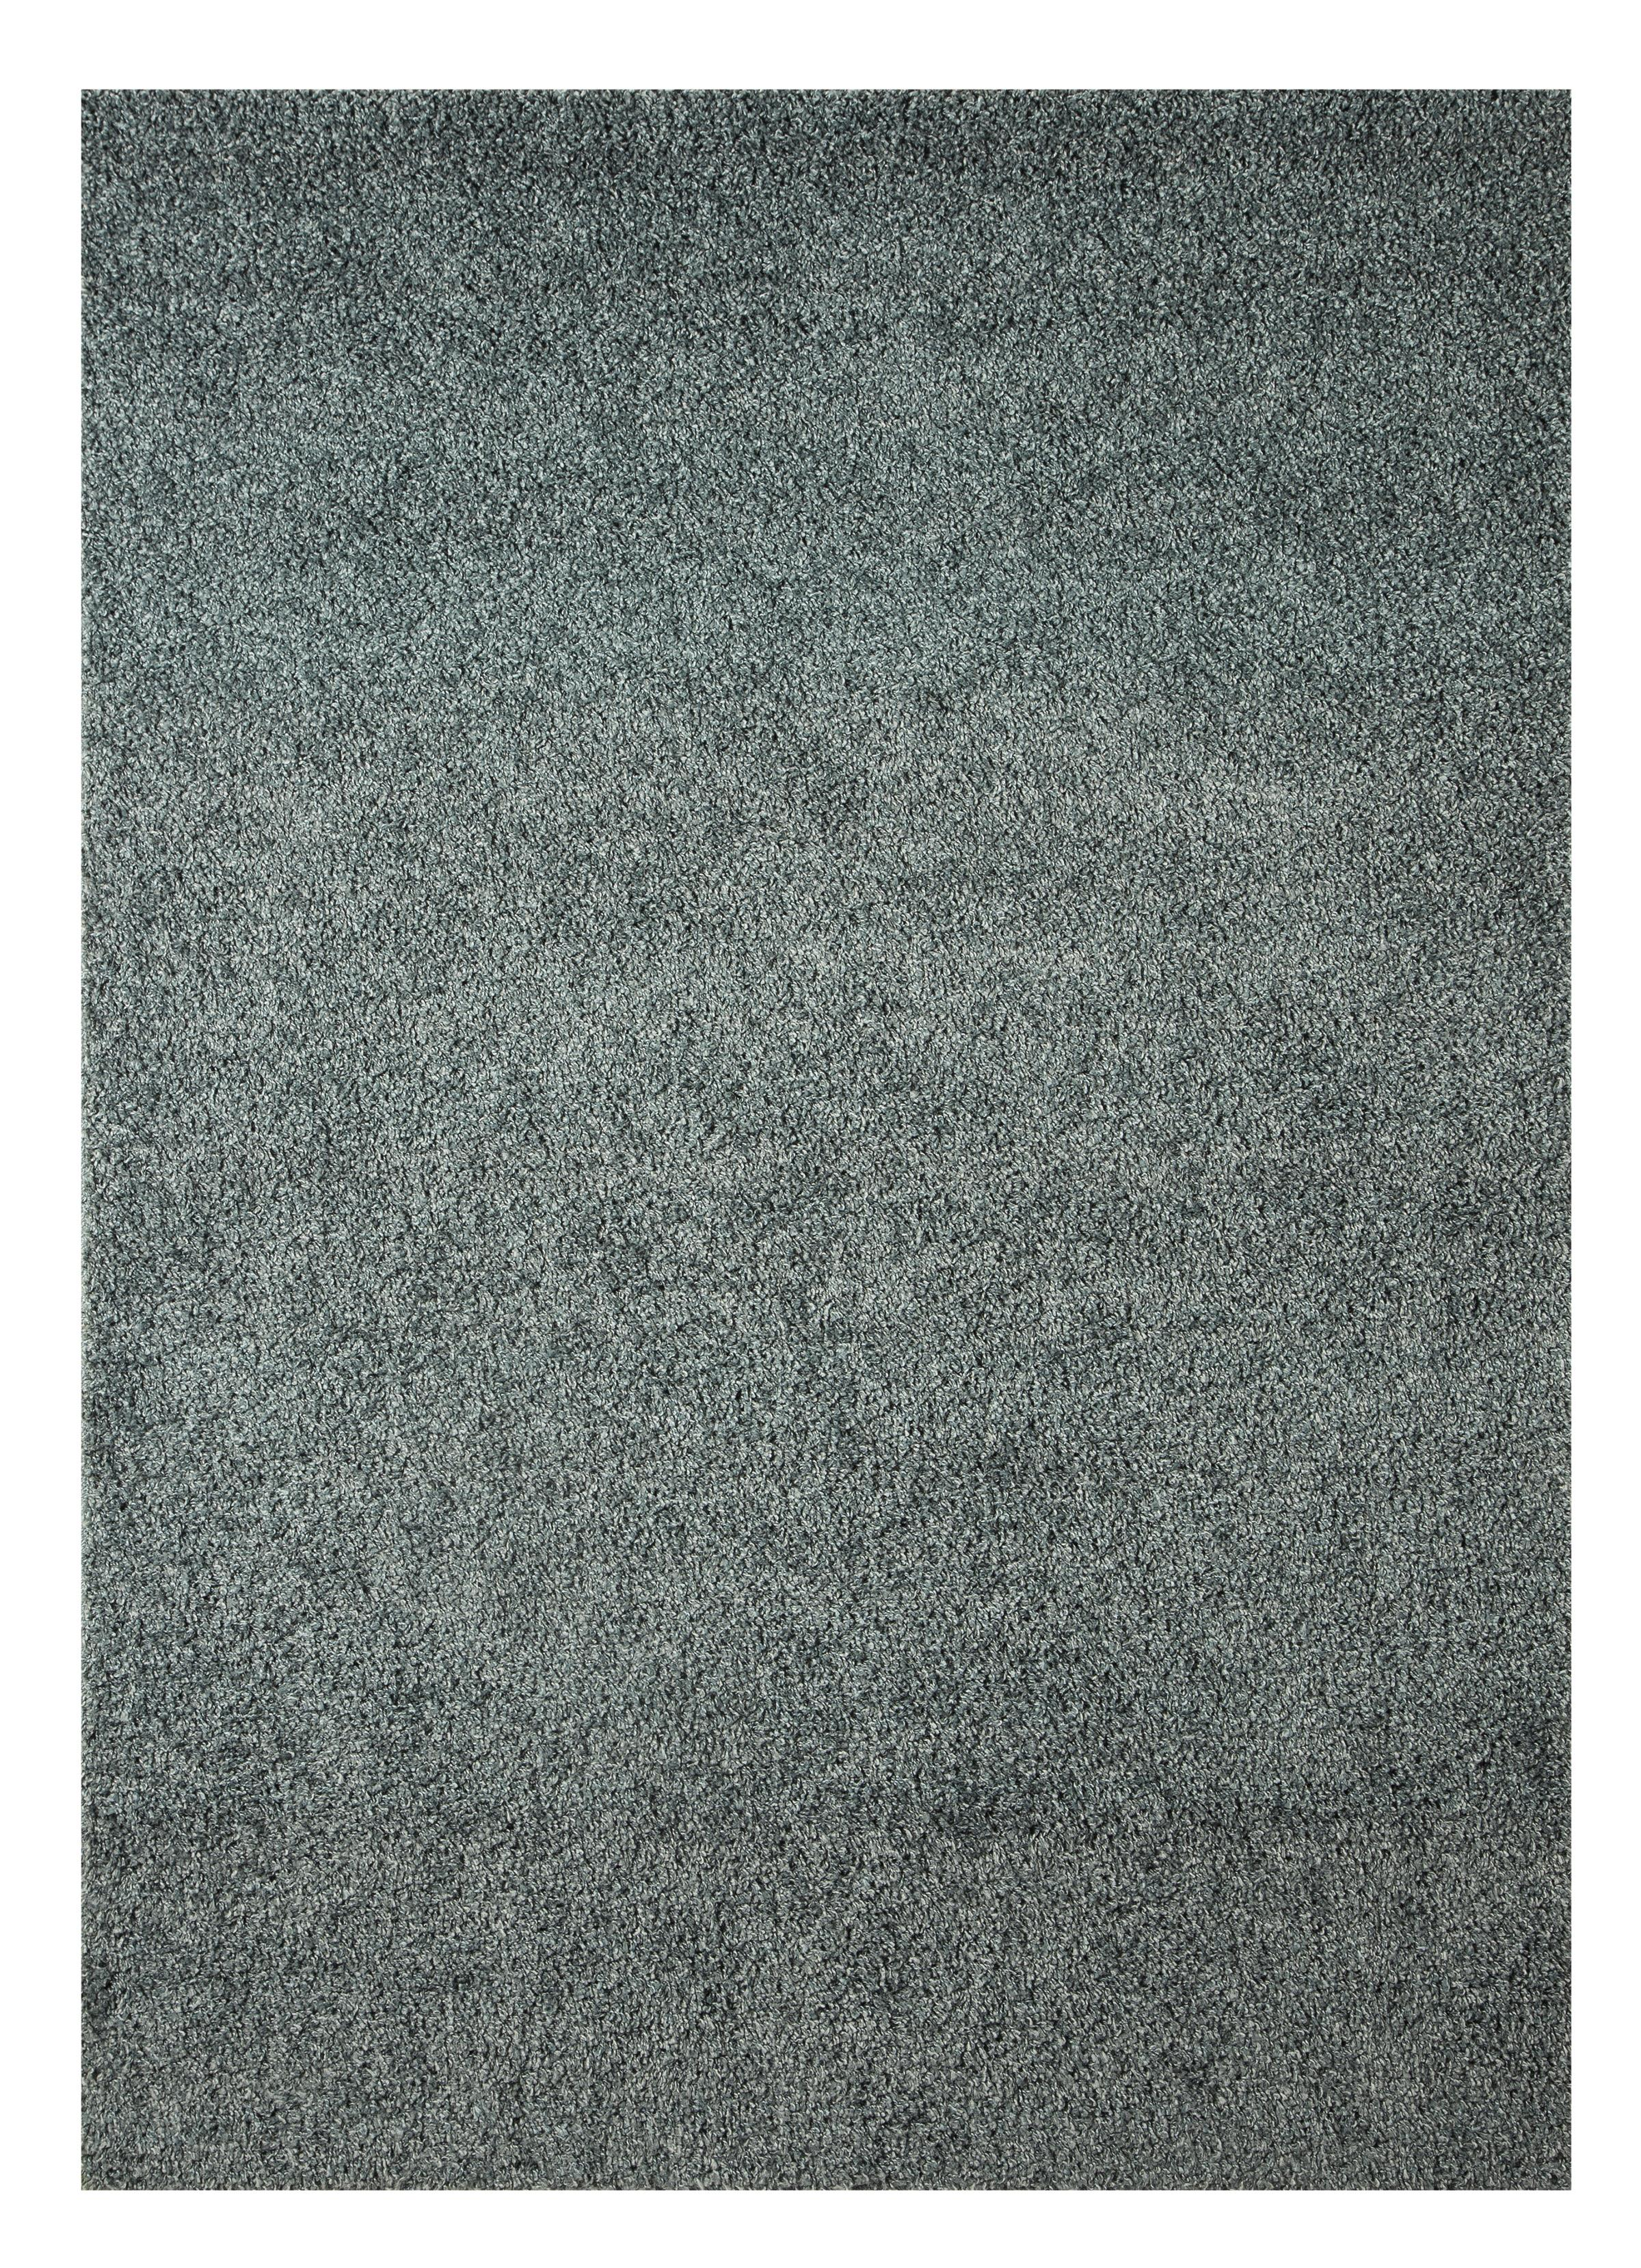 Signature Design by Ashley Contemporary Area Rugs Caci Light Blue Medium Rug - Item Number: R302002